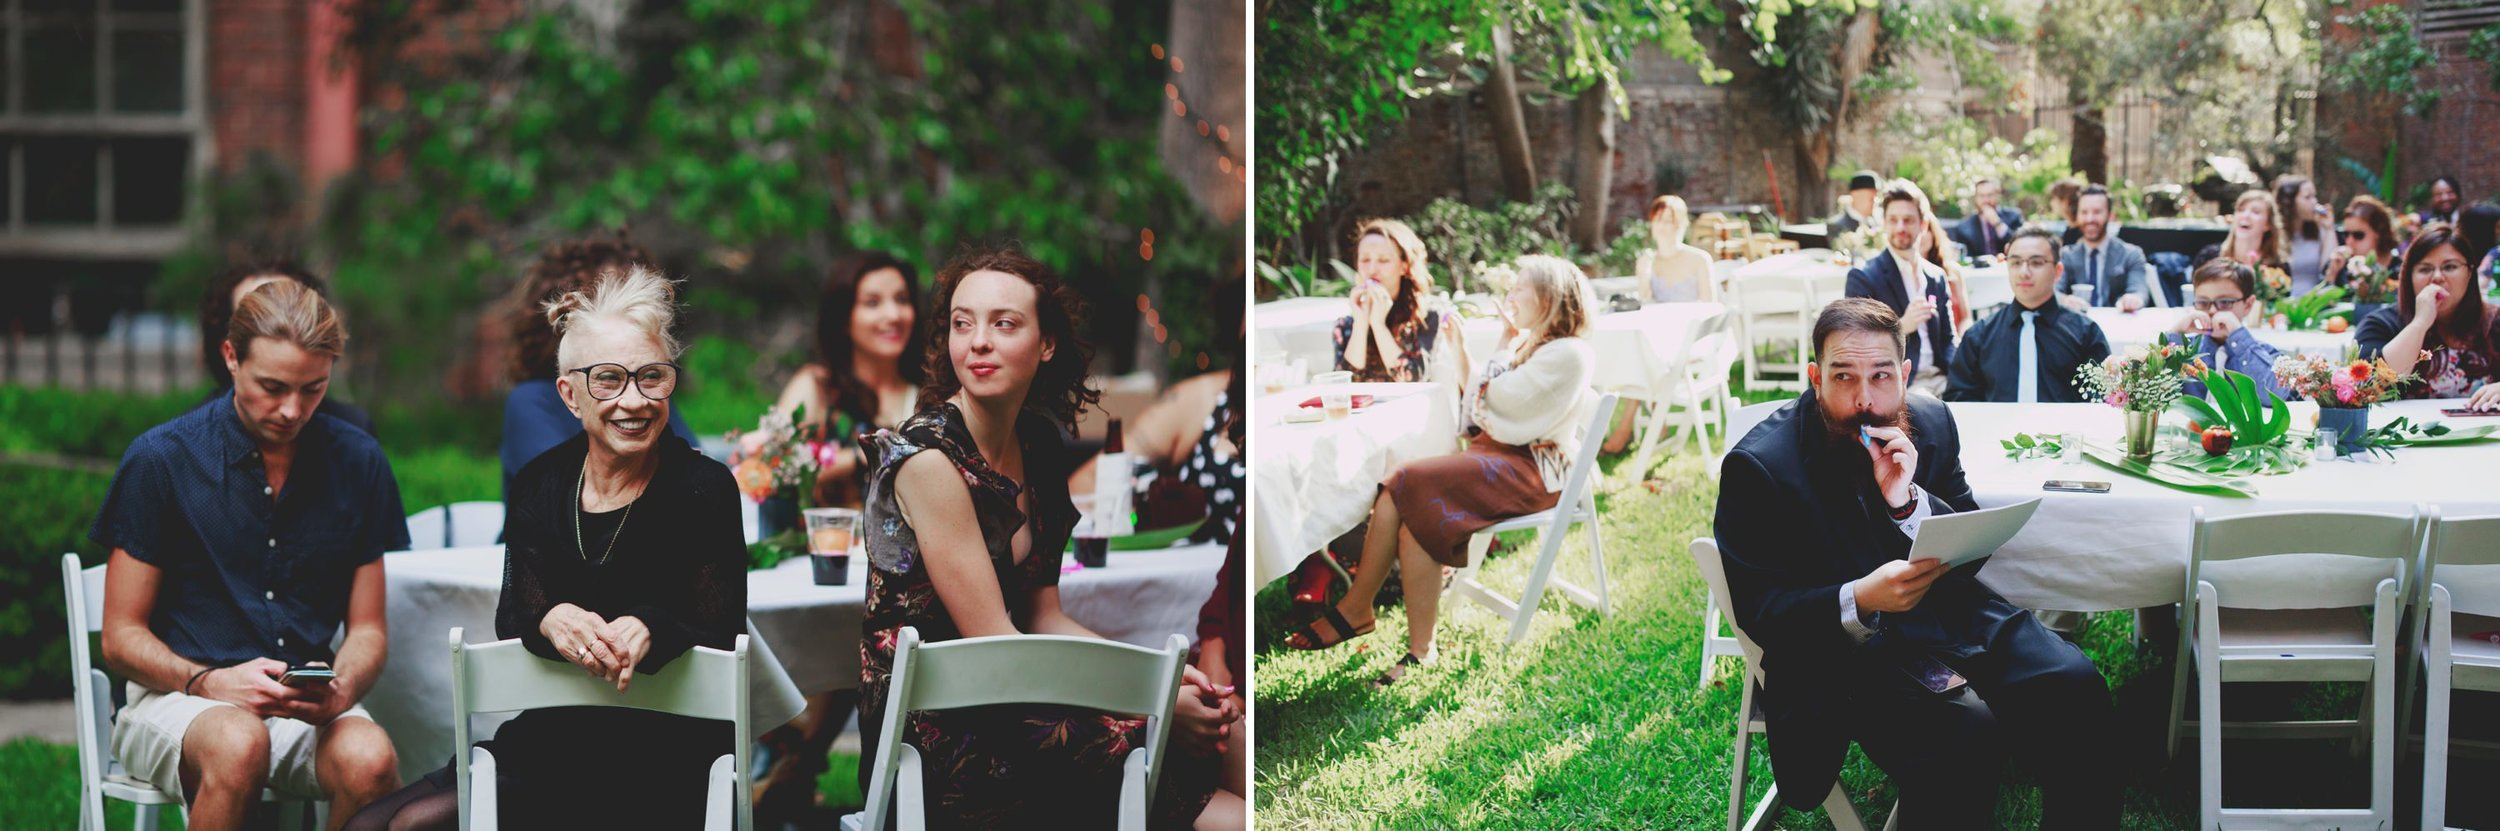 los_angeles_wedding_backyard_028.jpg